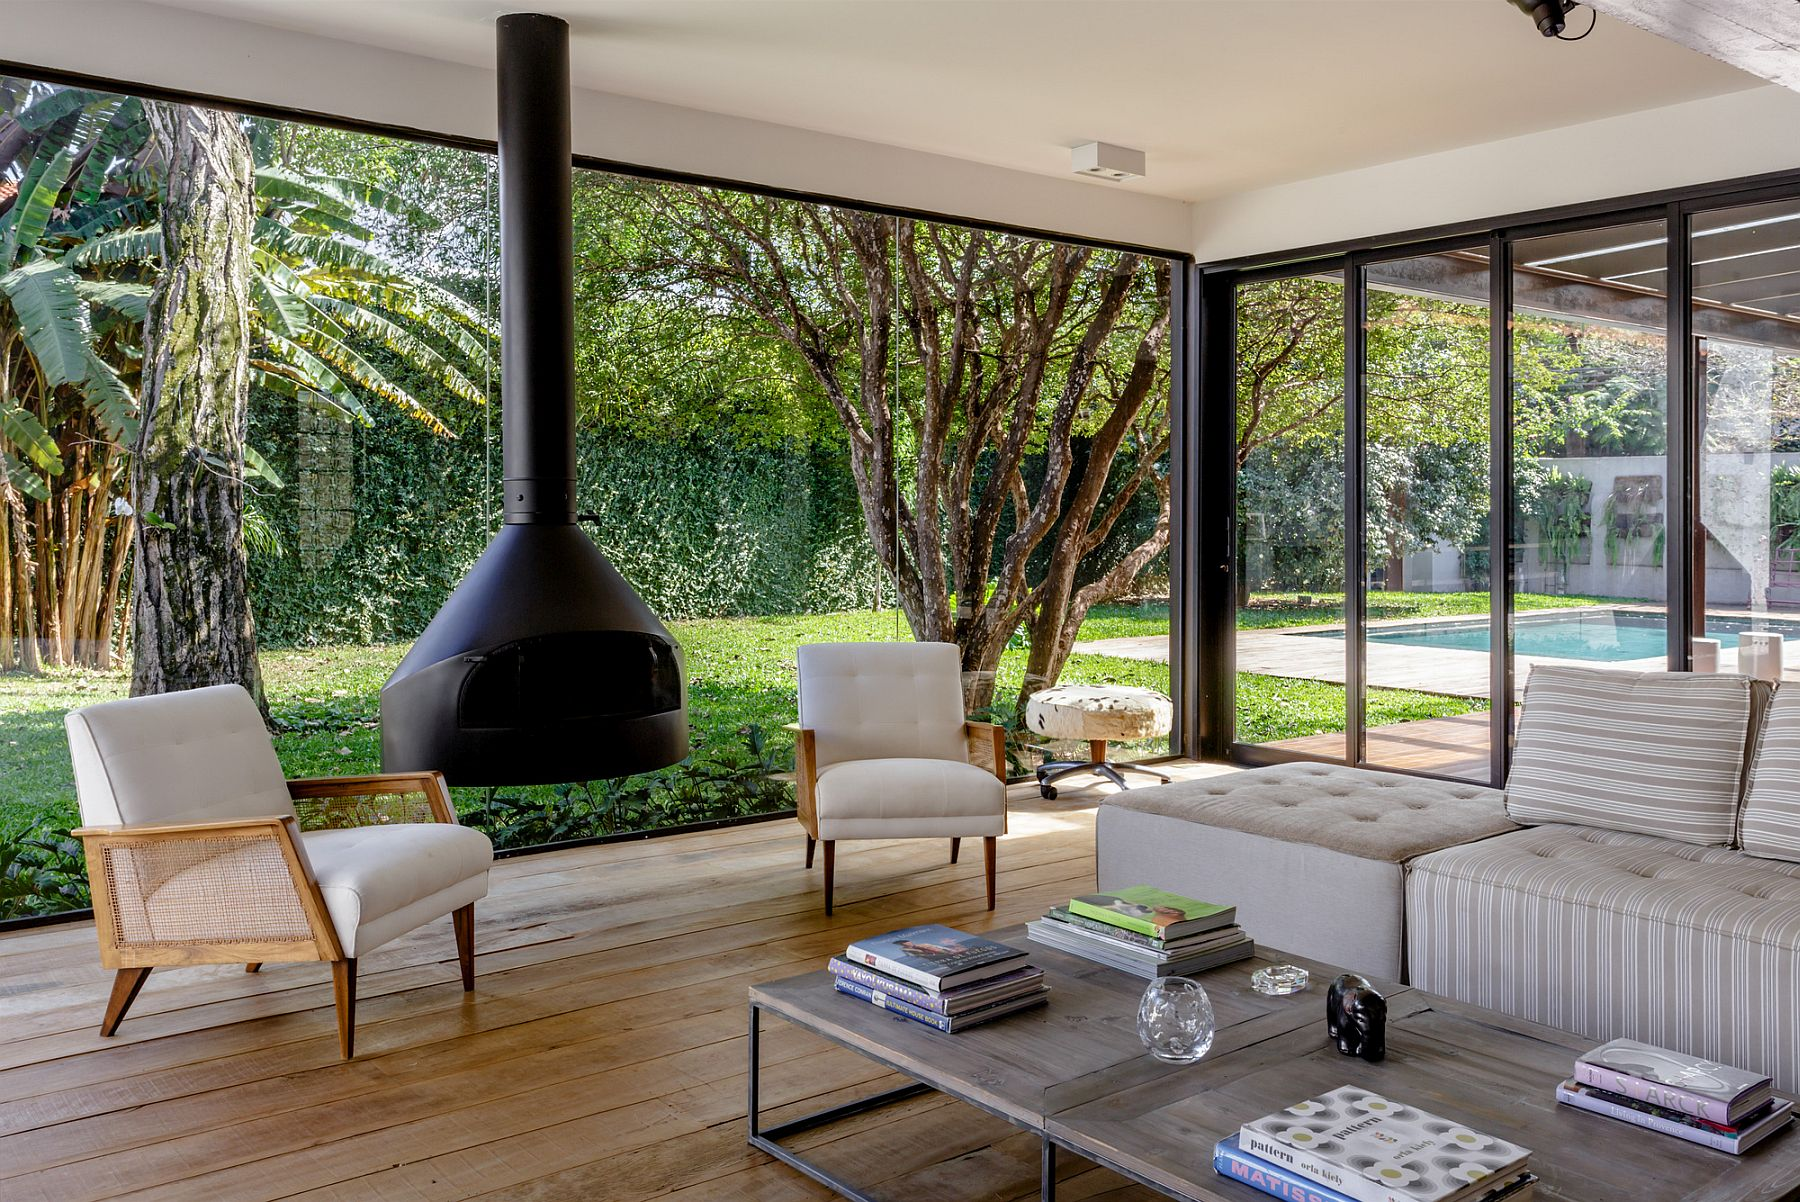 Glass walls and sliding glass doors bring the garden outside indoors